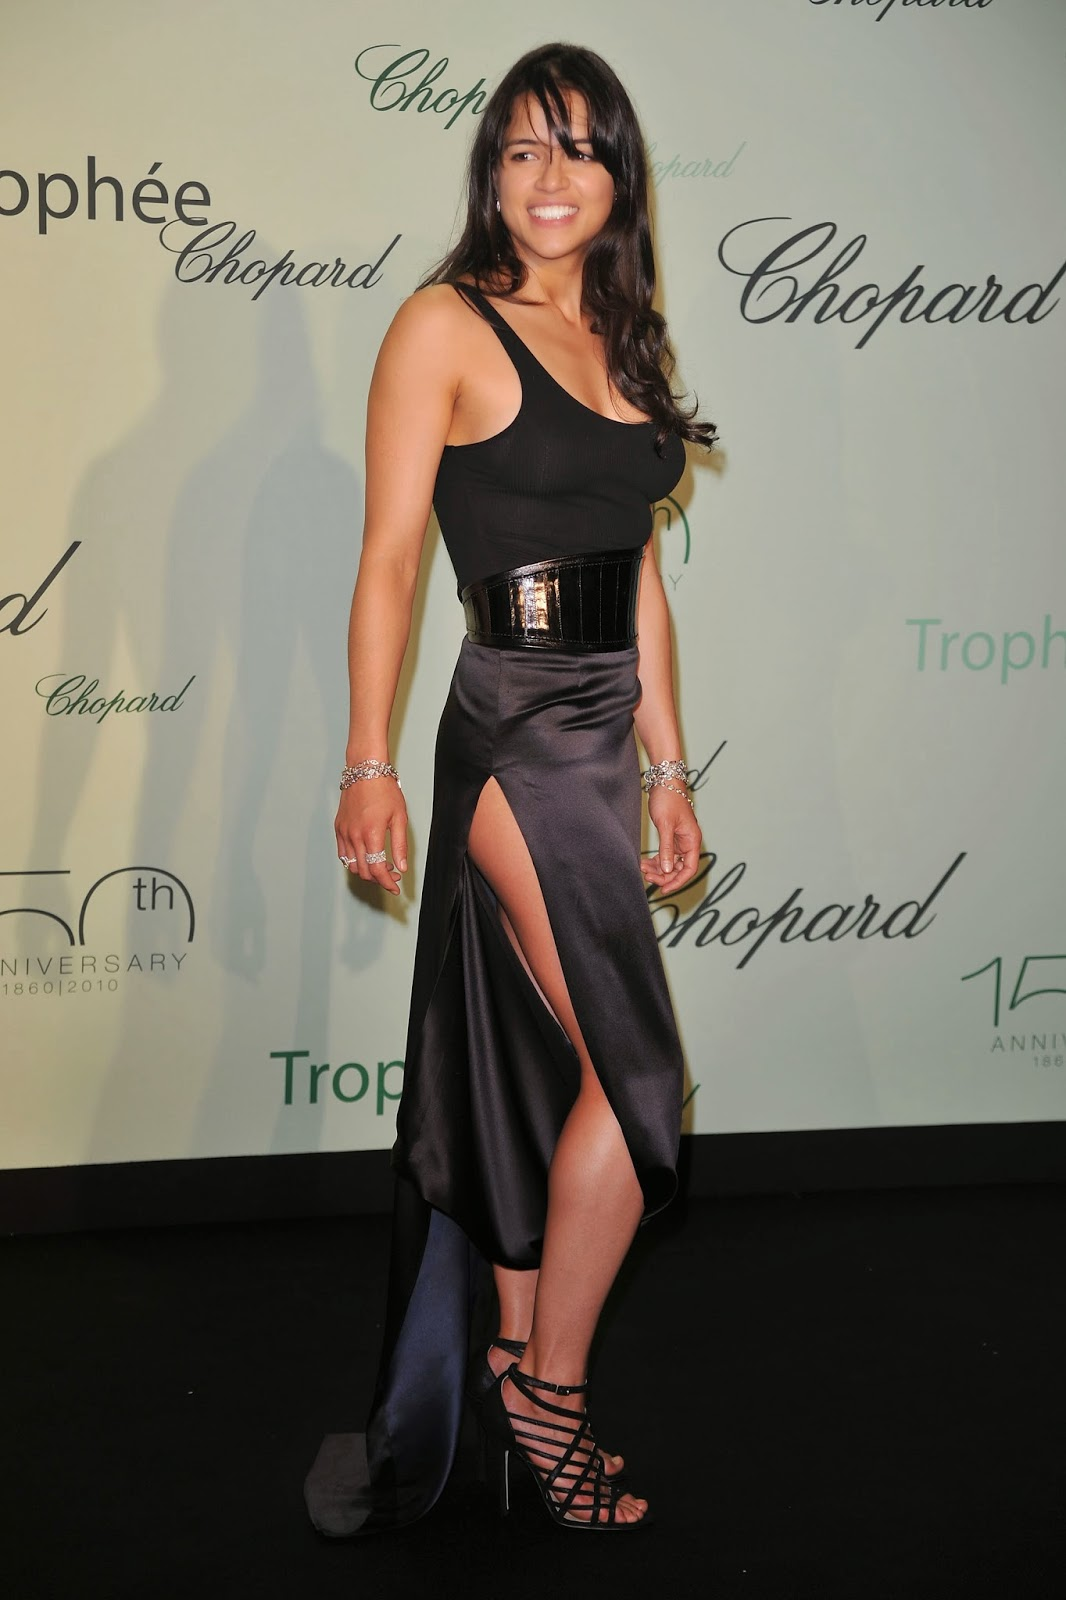 Michelle Rodriguez at event